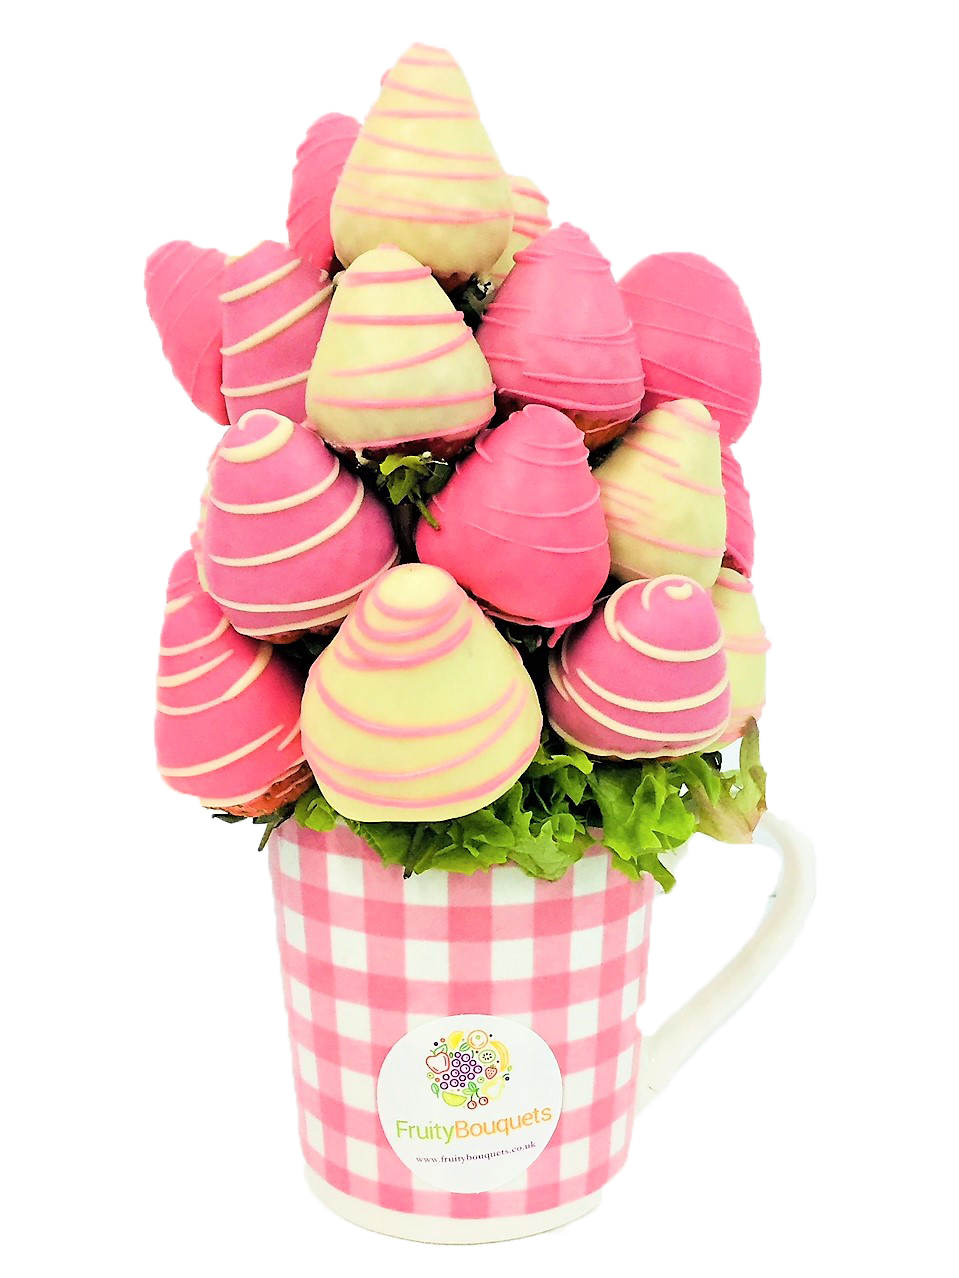 chocolate strawberry Gift Mug by Fruity Bouquets 3.png